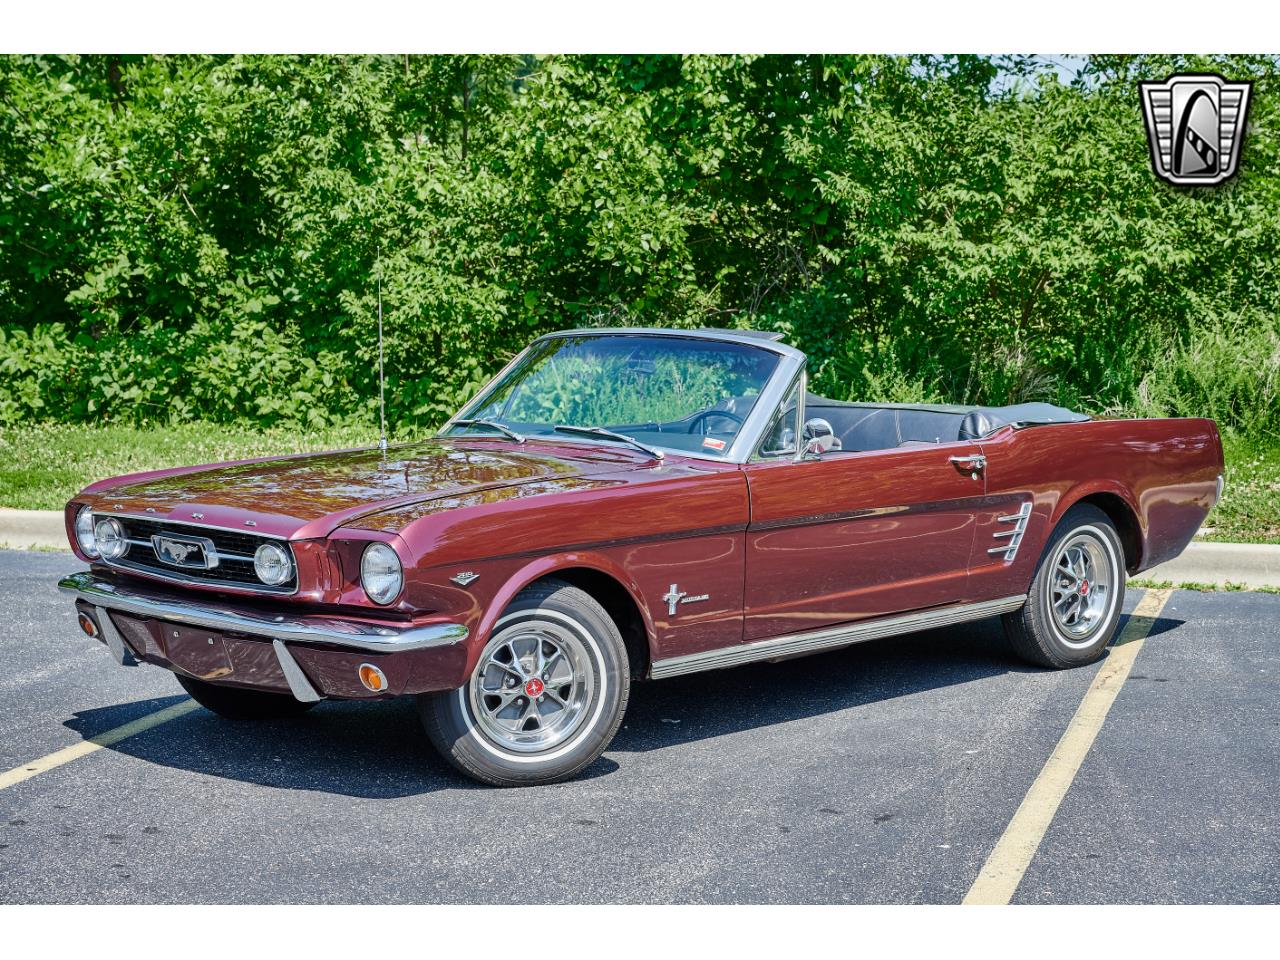 Ford Mustang Cabriolet 1966 v8 code c prix tout compris 1966